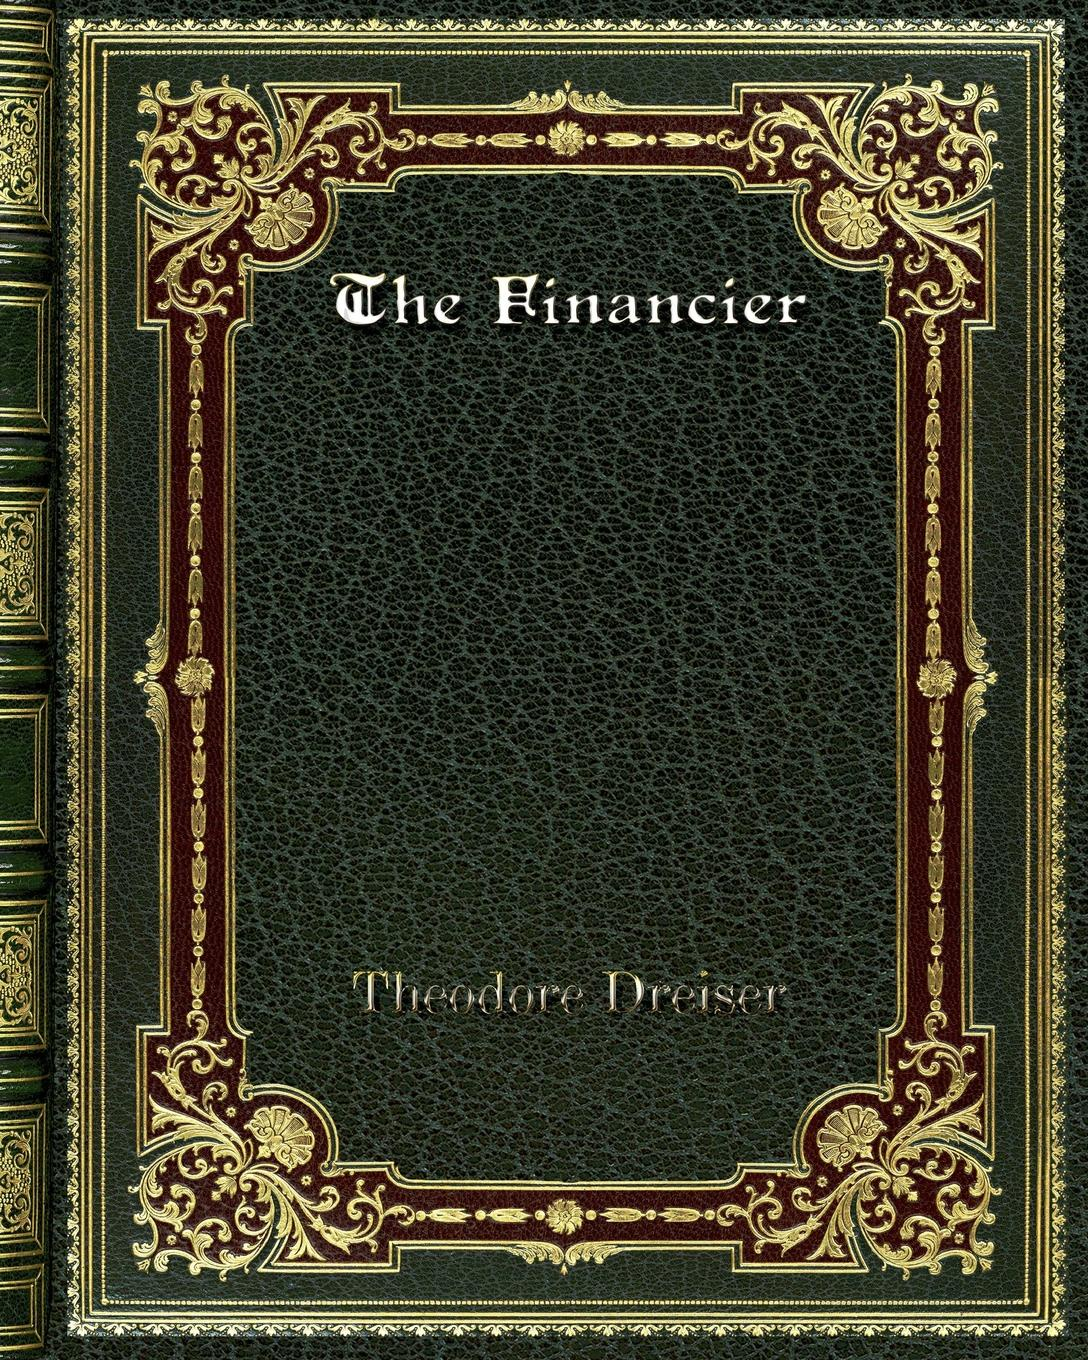 Theodore Dreiser The Financier